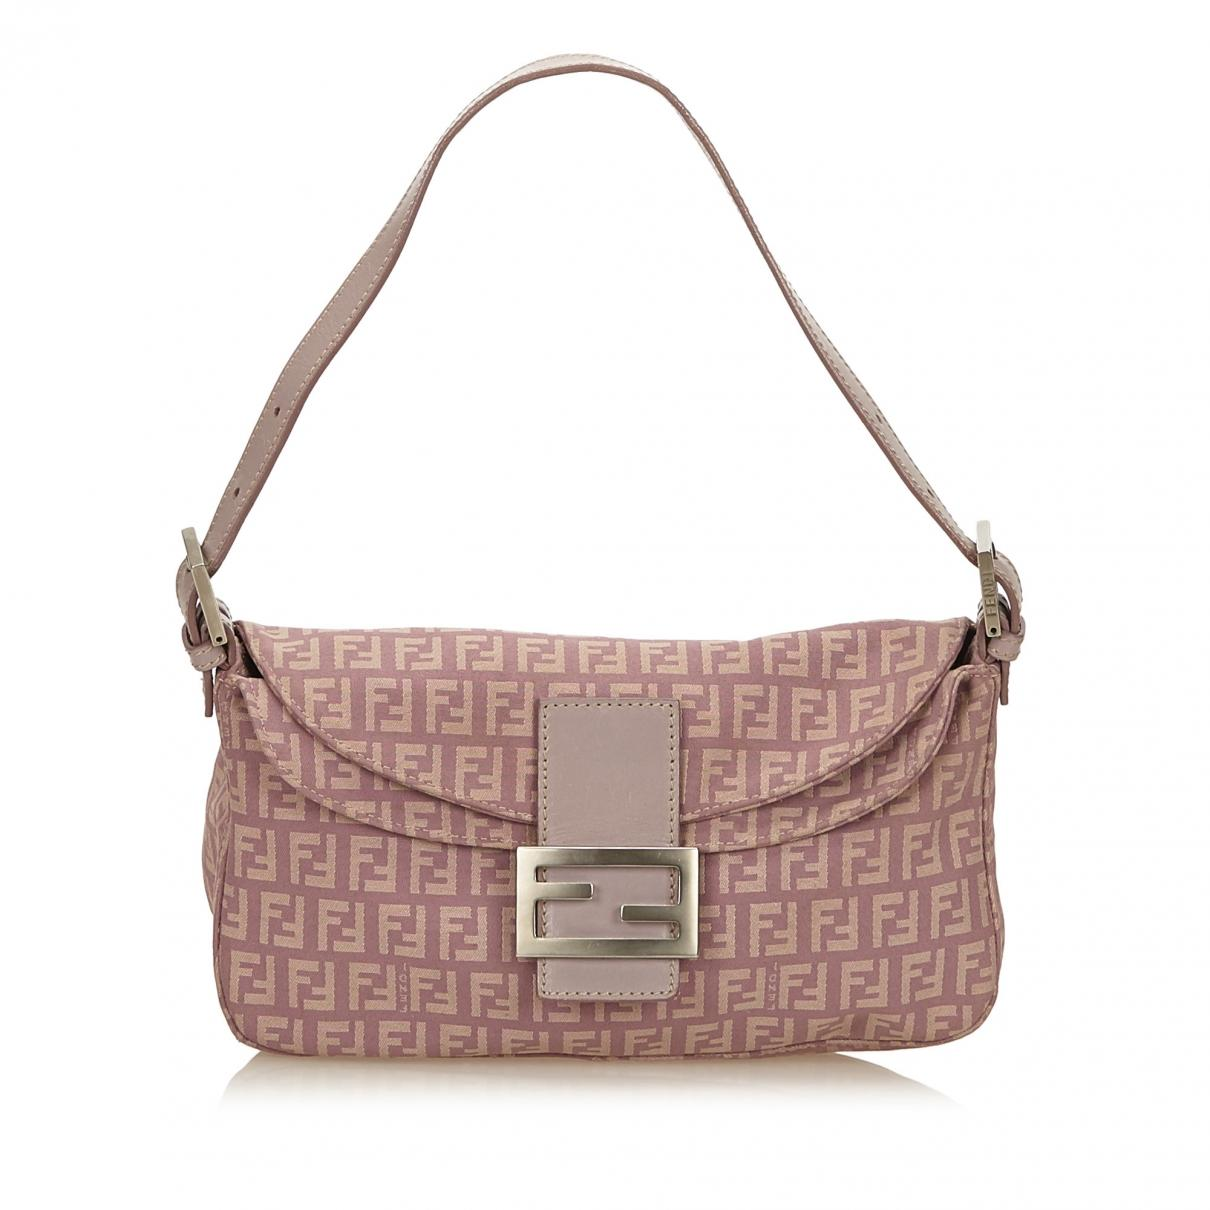 Baguette Pink Fendi In Lyst Handbag Cloth vN0w8OyPmn